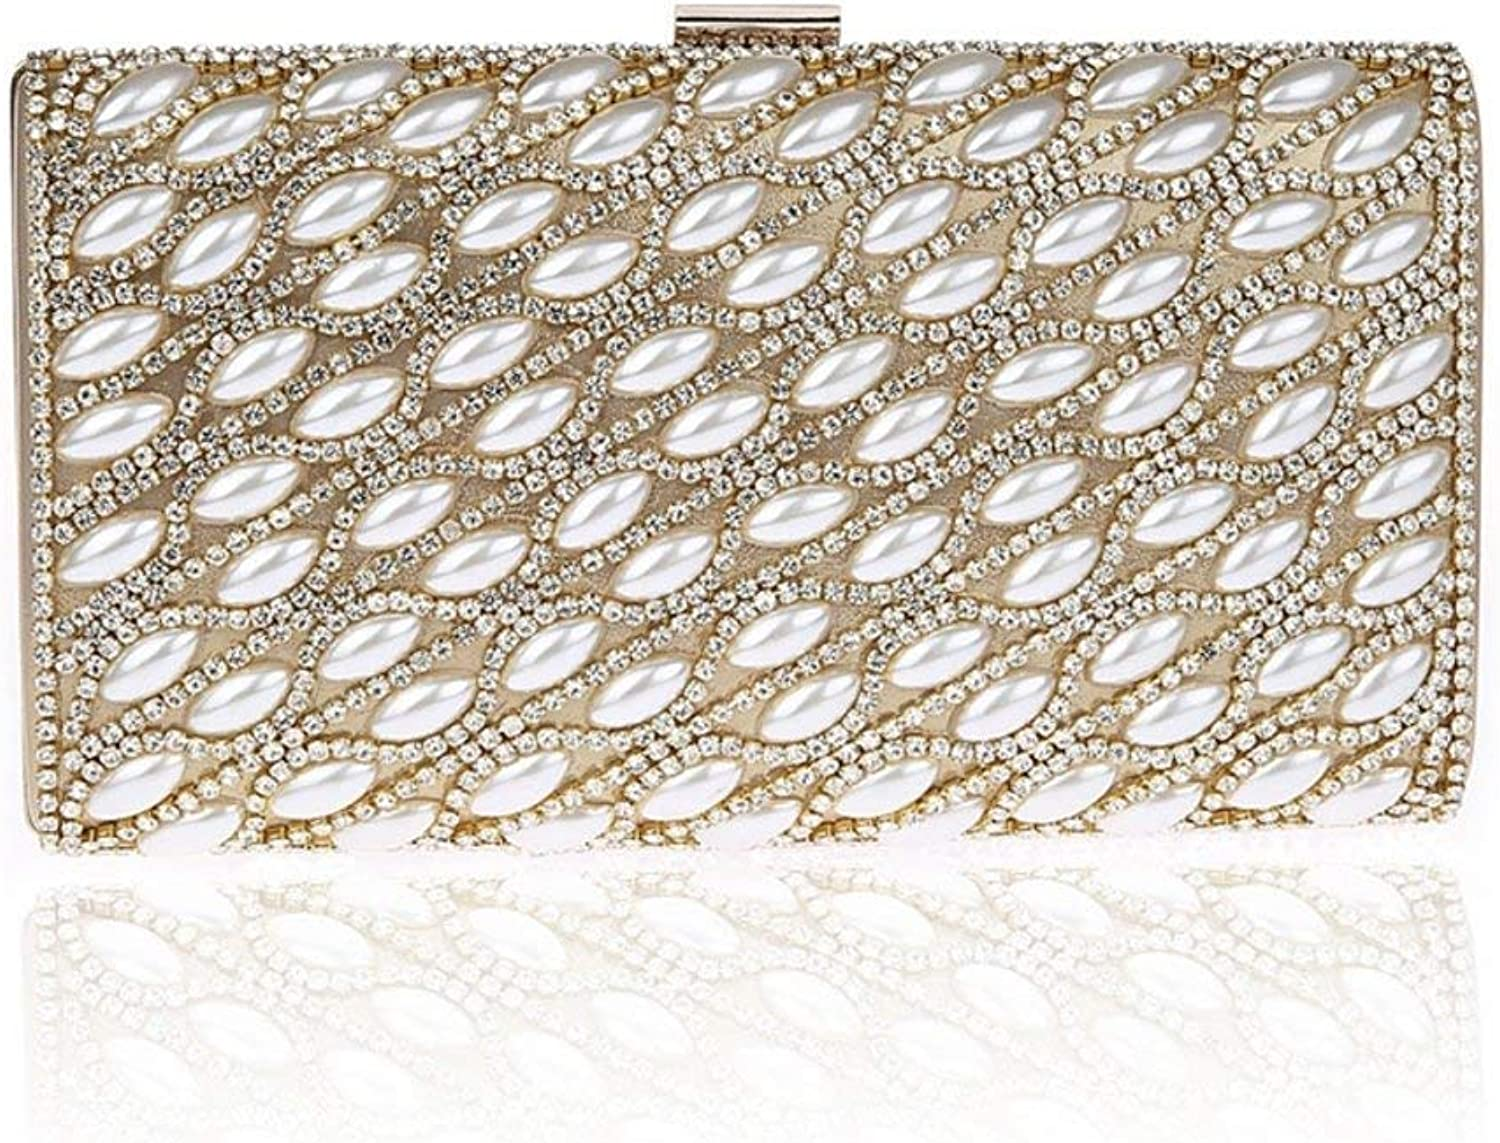 Ladies Handbag Rhinestone Evening Bag,Diamond Pearl with Chain Strap Women's Handbag for Dance Wedding Party (color   golden, Size   22x12x3cm(9x5x1inch))